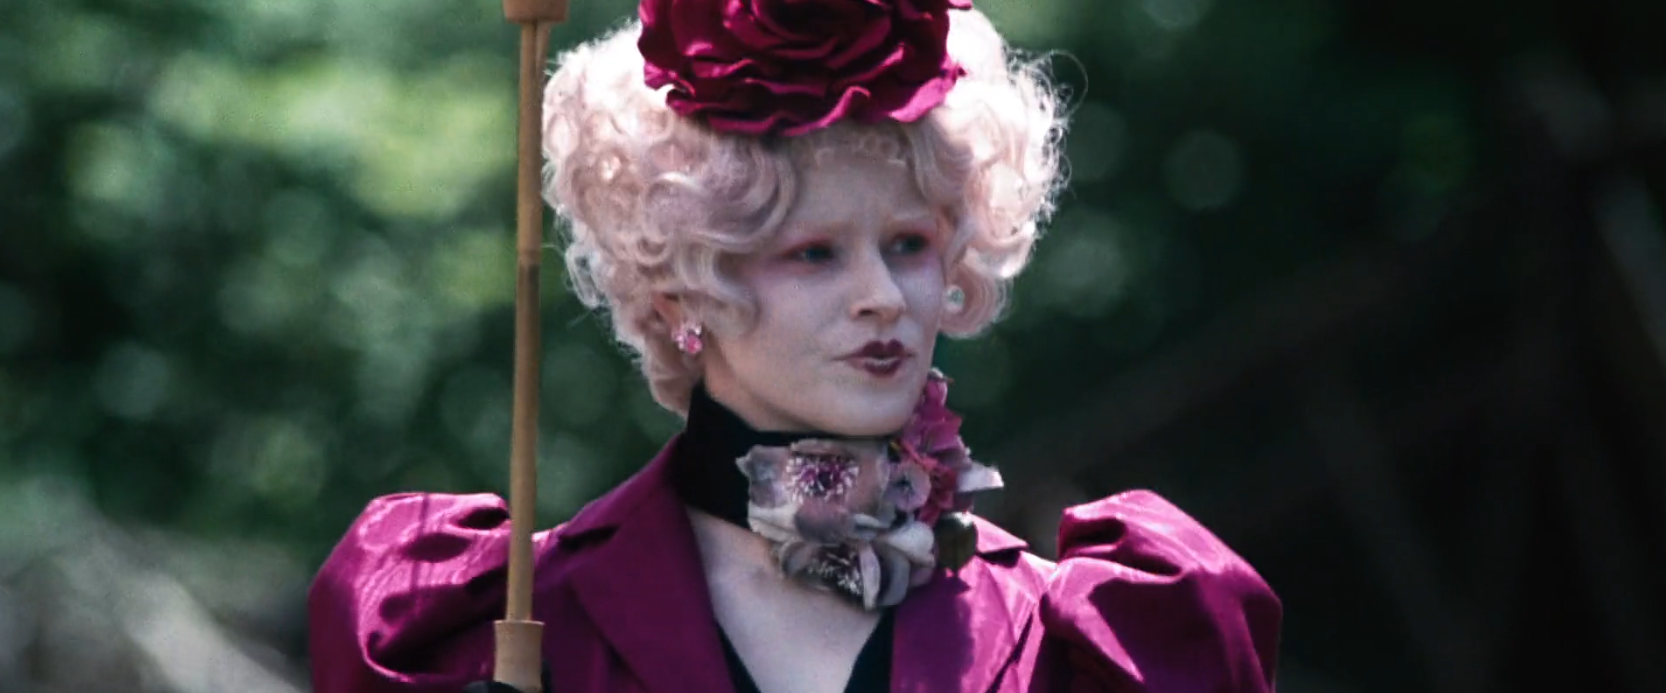 Elizabeth Banks as Effie Trinket in the hunger games awesome hairstyle